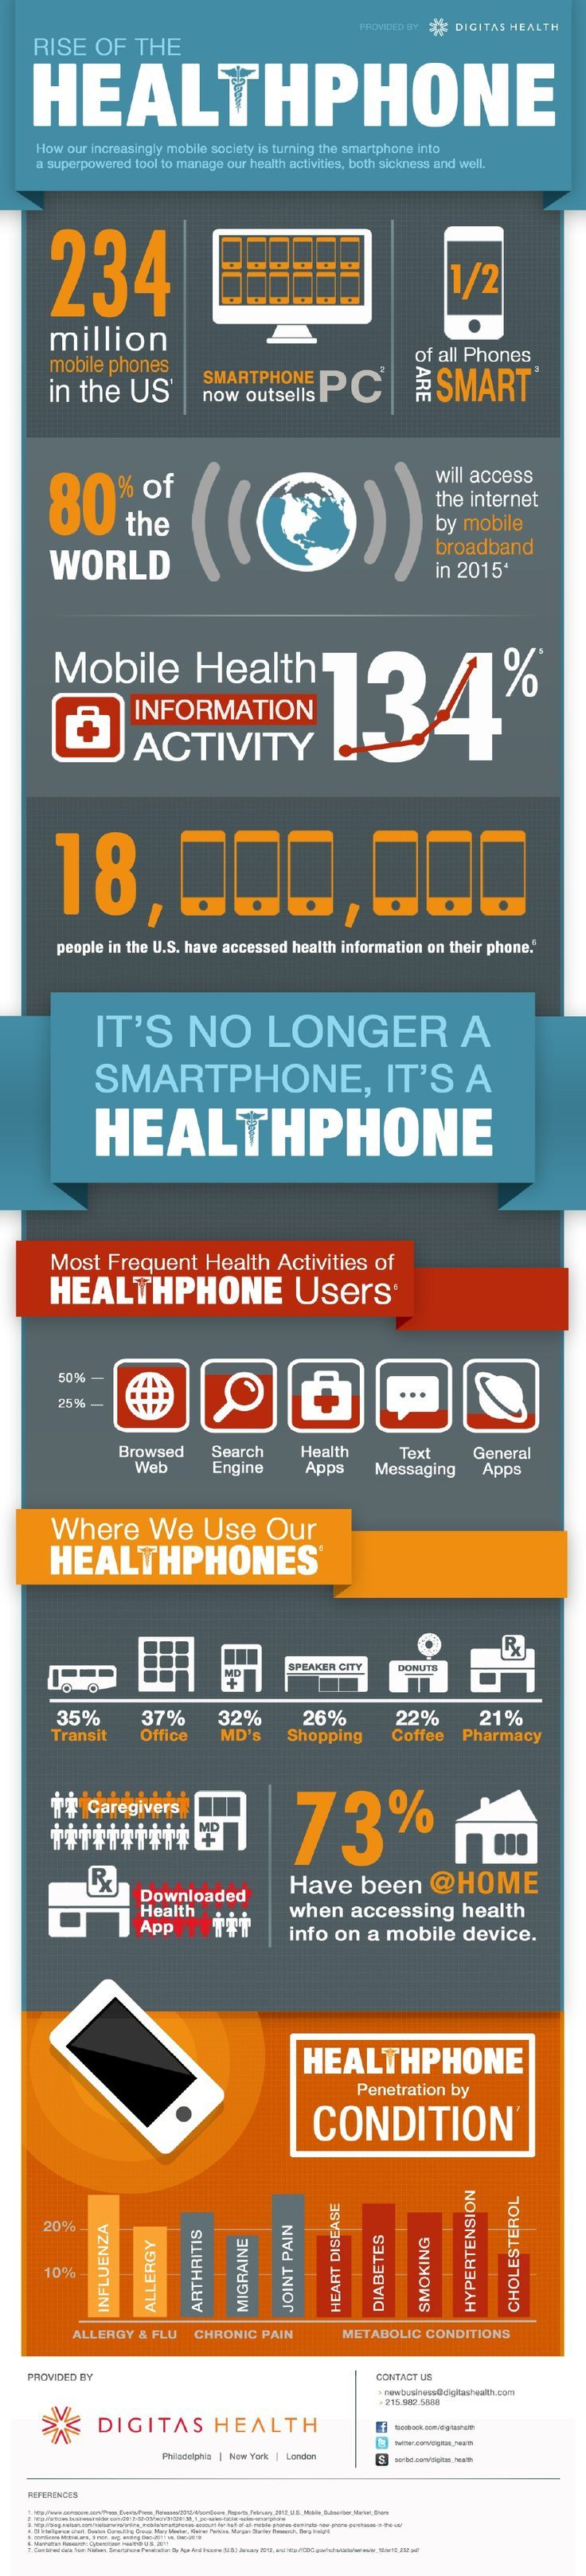 Rise of the Healthphone Infographic Digitas Health | New Visions Healthcare Blog - www.healthcoverageally.com